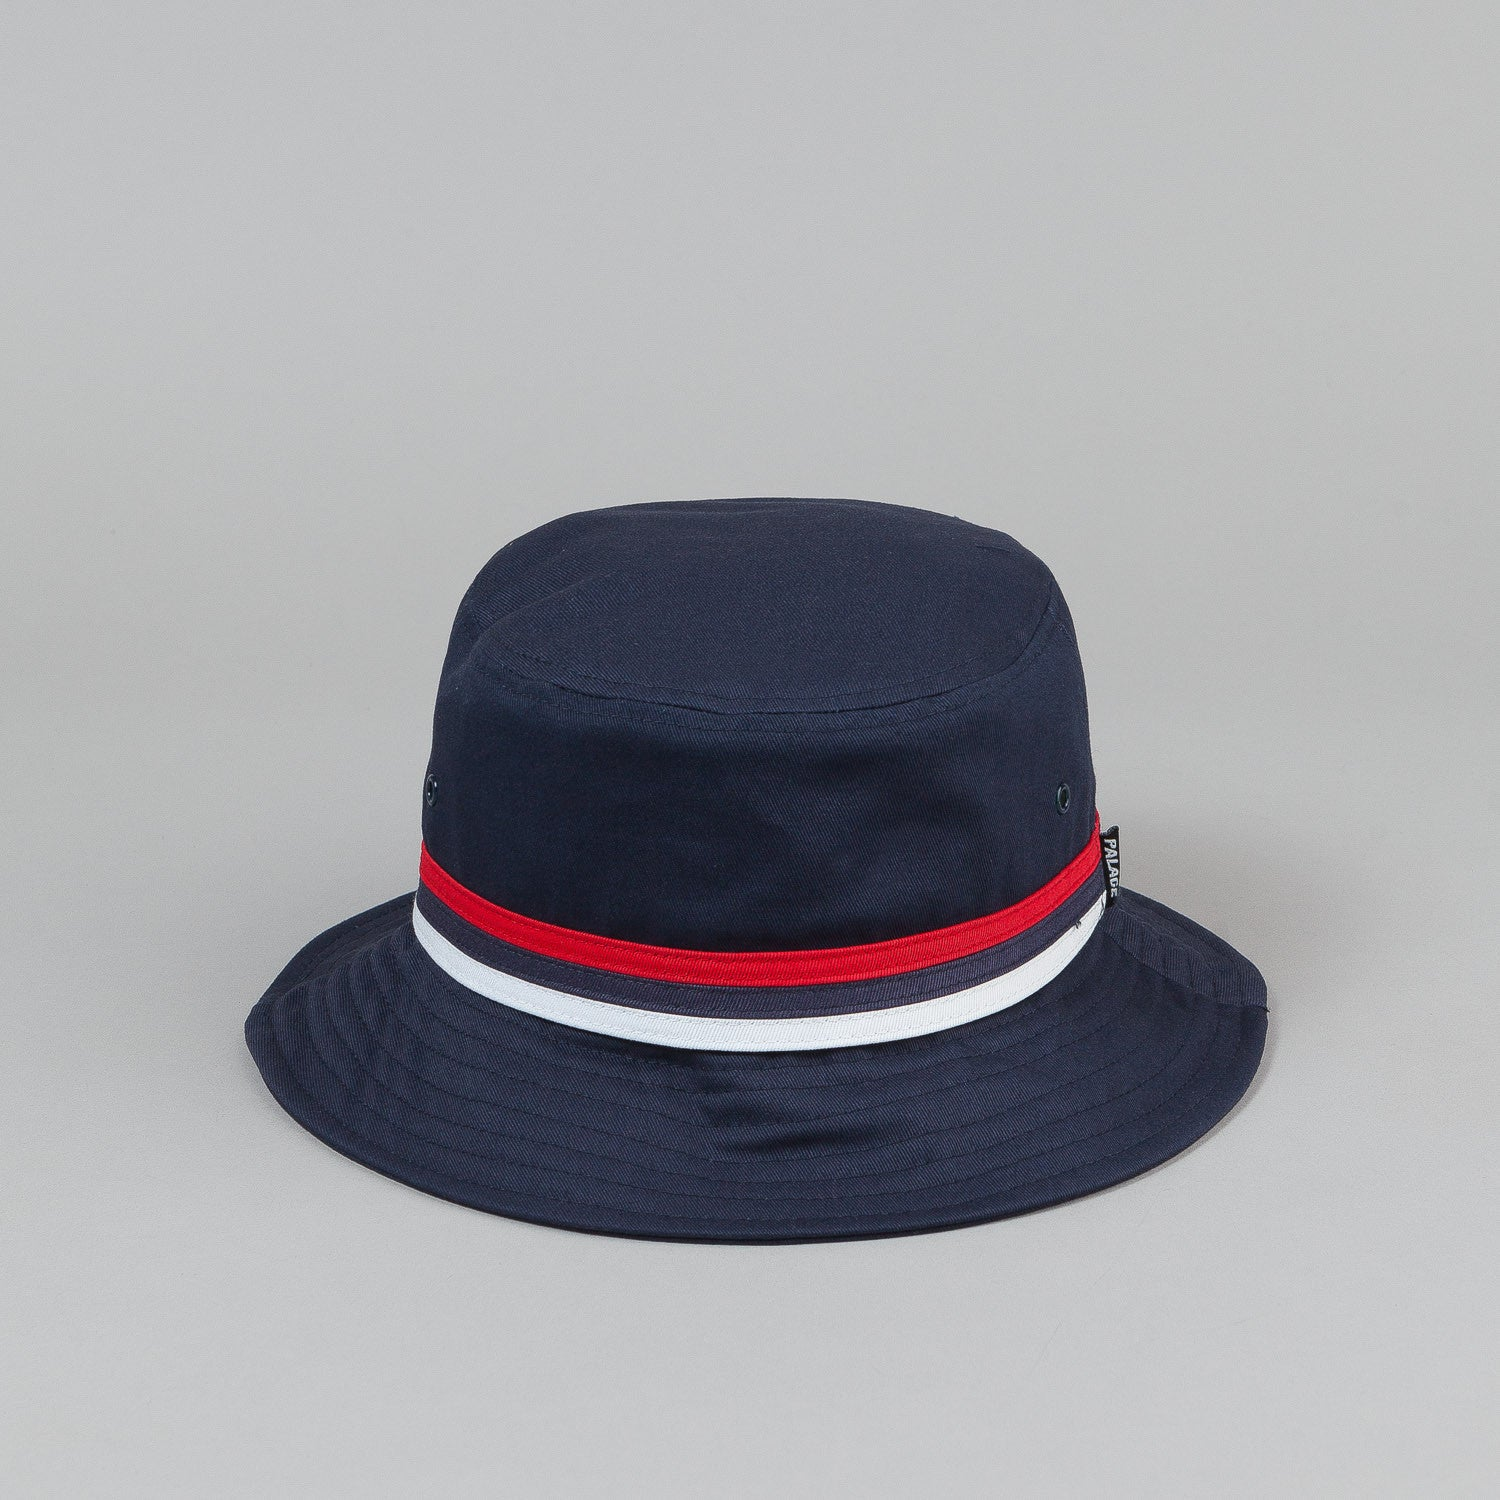 Palace Bucket Hat - Navy / Striped Trim